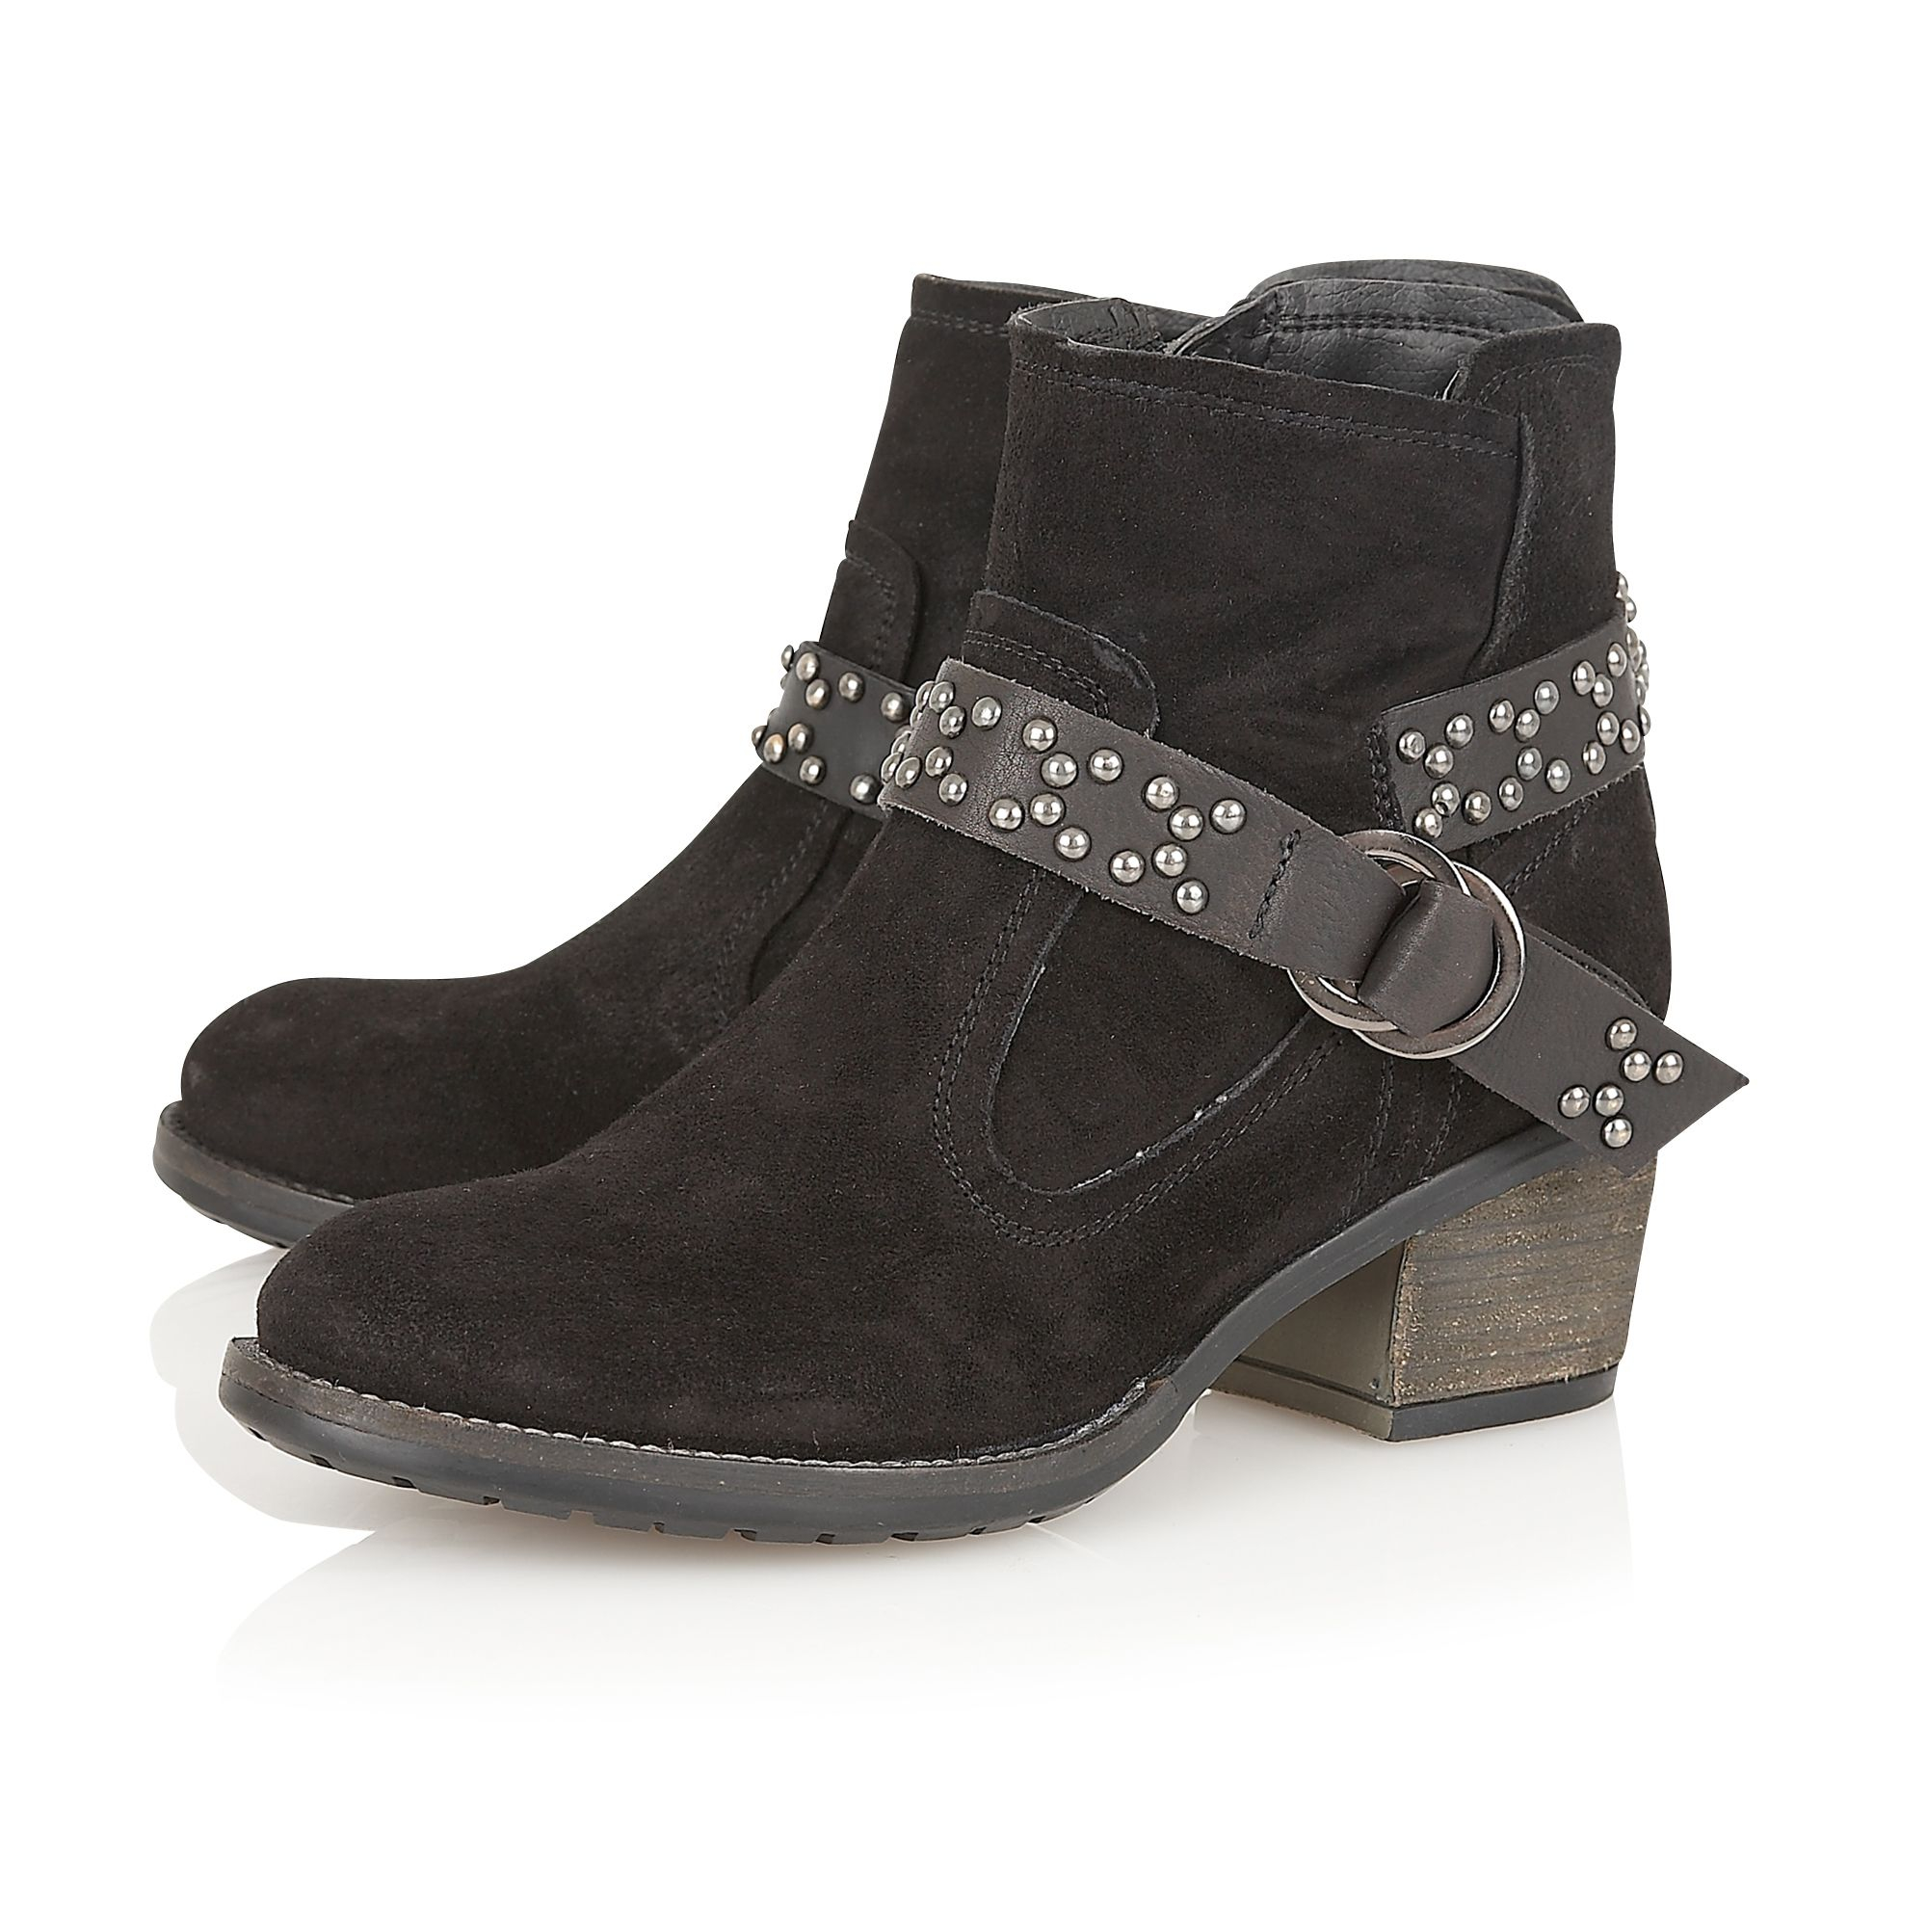 Lotus Leather Kaylah Ankle Boots in Black